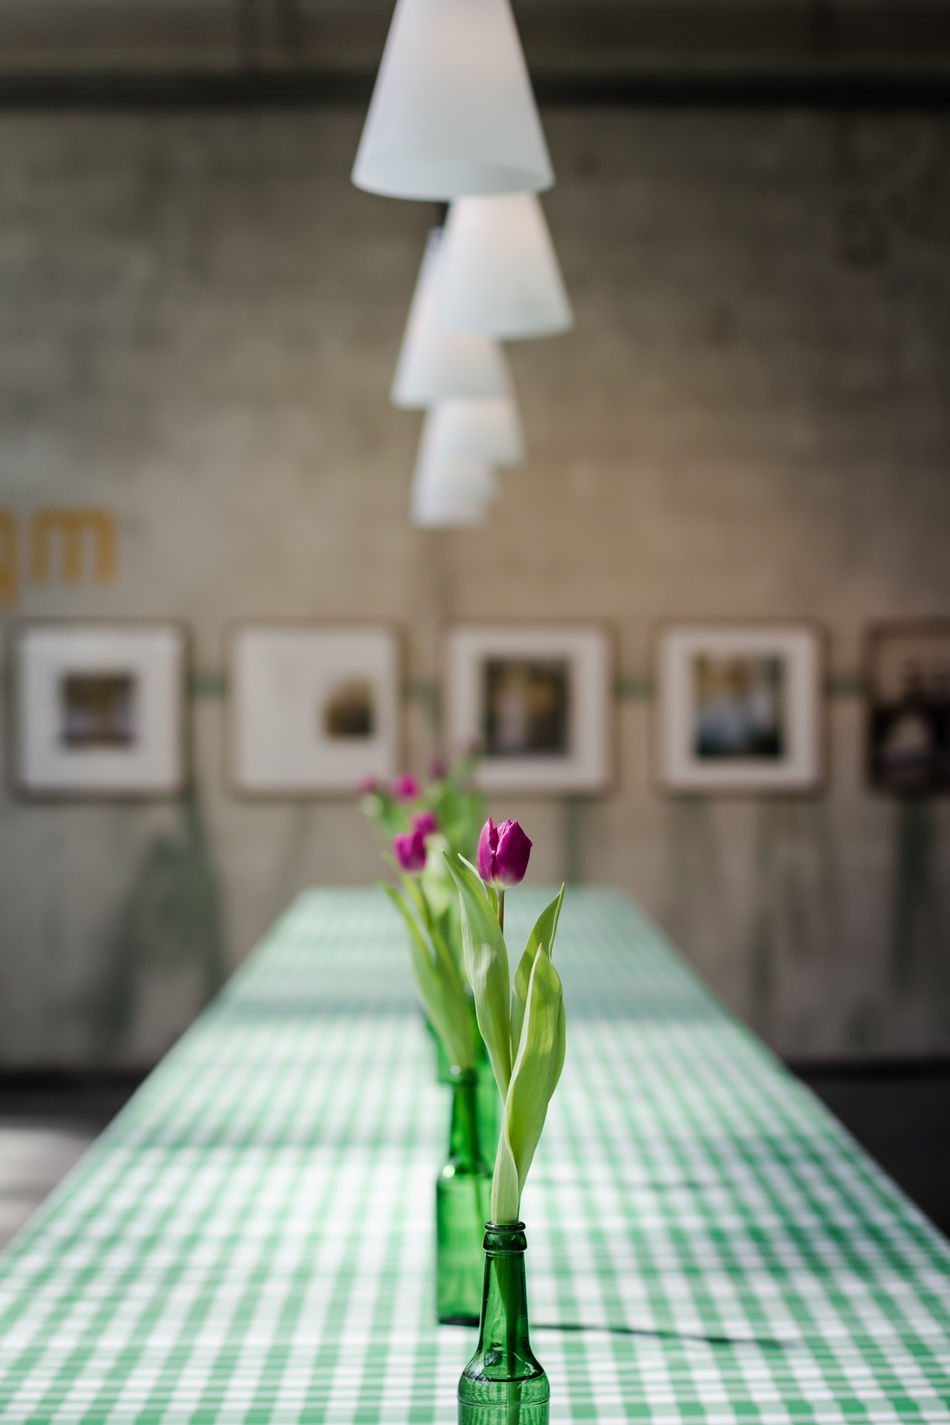 Tulips in an art gallery ArtWork Blossom Compositions Exhibition Flower Flower Head Gallery Glass Green Lamp Photo Exhibition Pictures Plant Tabel Cloth Table Tulip Vase Vernissage Violet Everything In Its Place